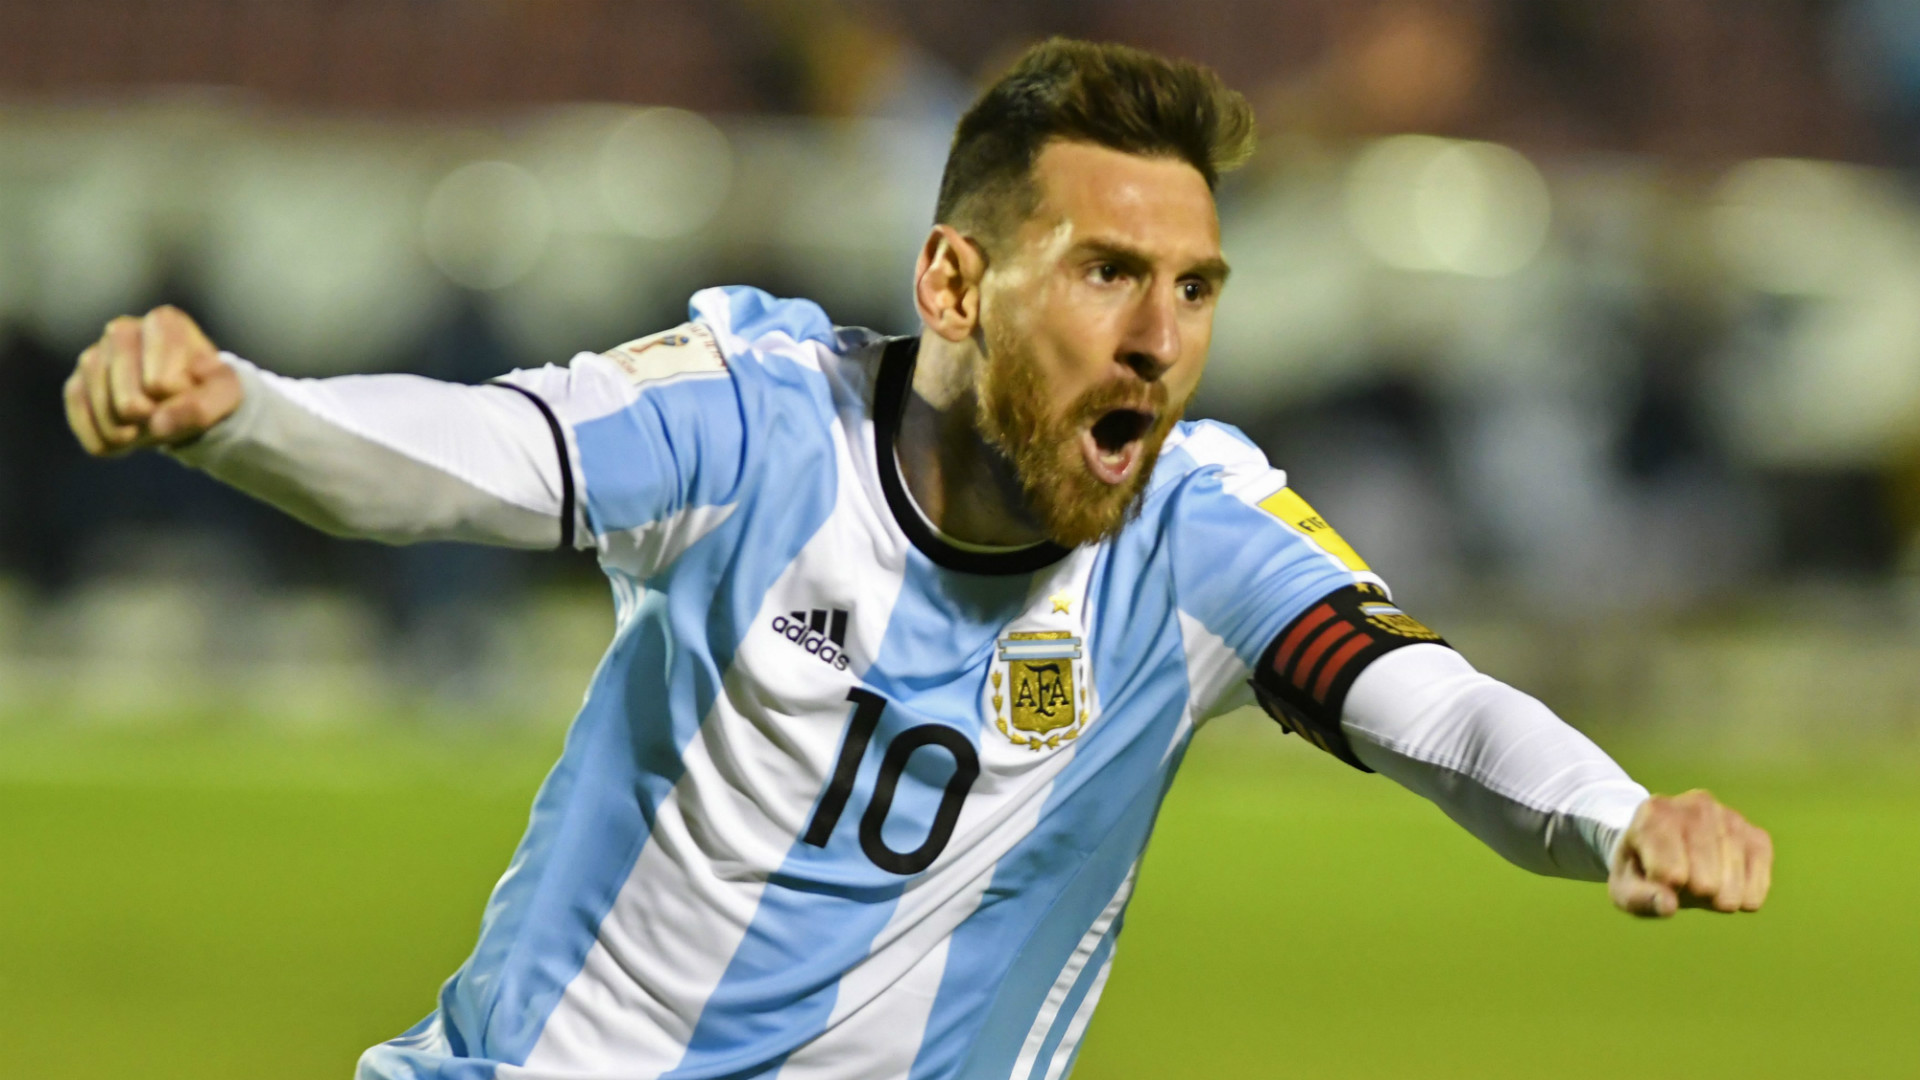 'If you love football, you love to watch Messi' - Wenger delighted Barcelona star will grace World Cup